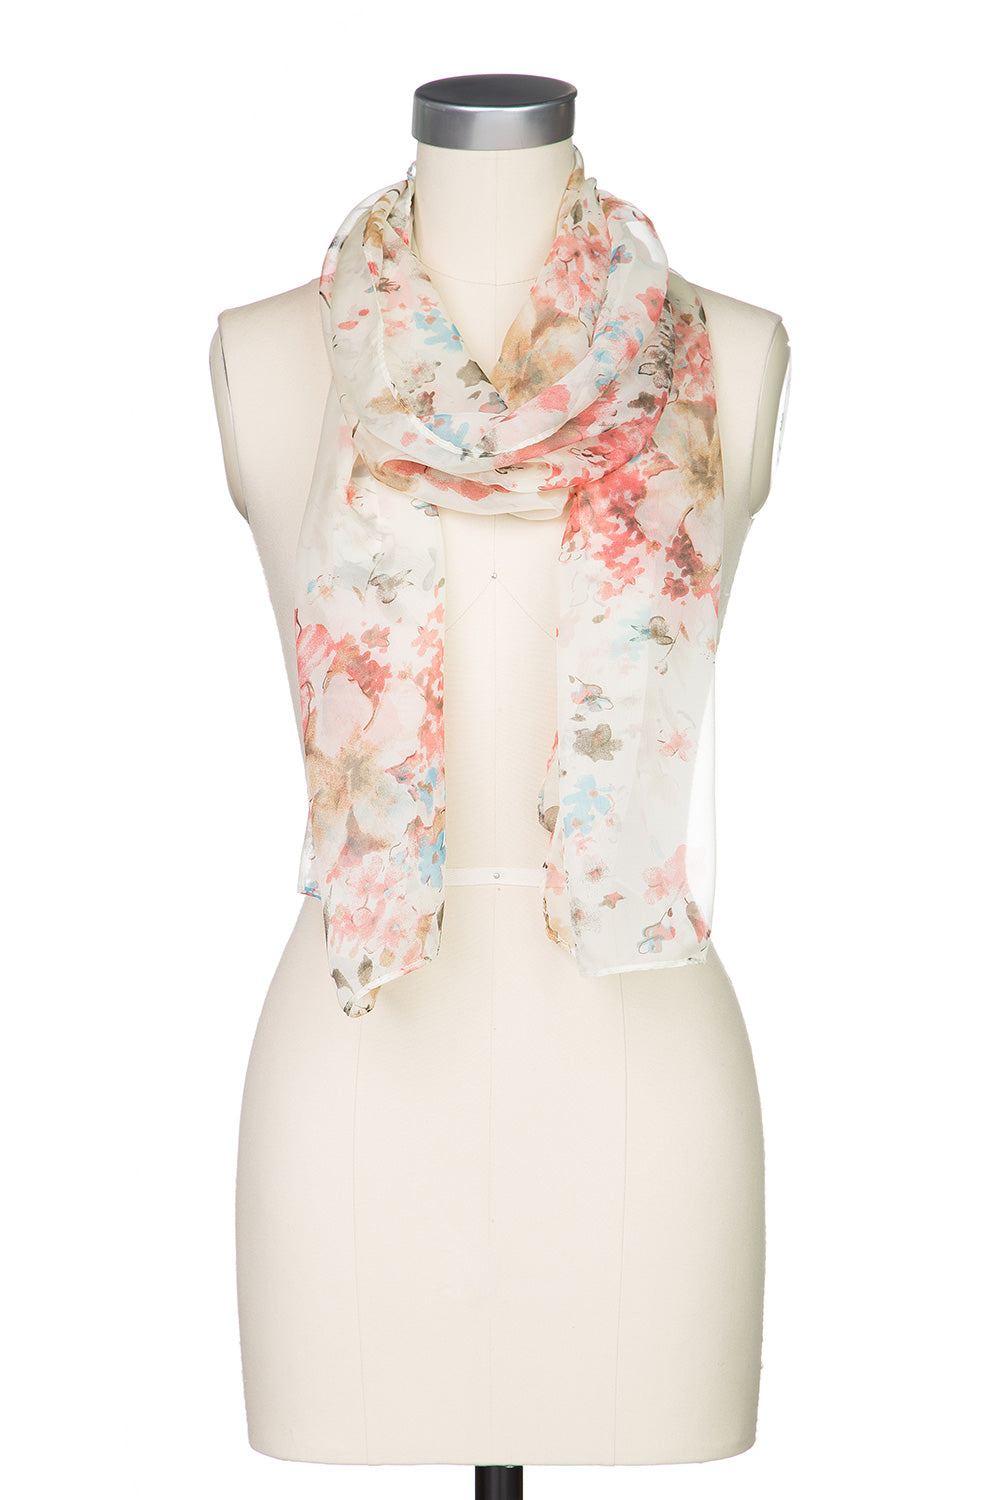 Type 2 Flowery Feelings Scarf in Cream